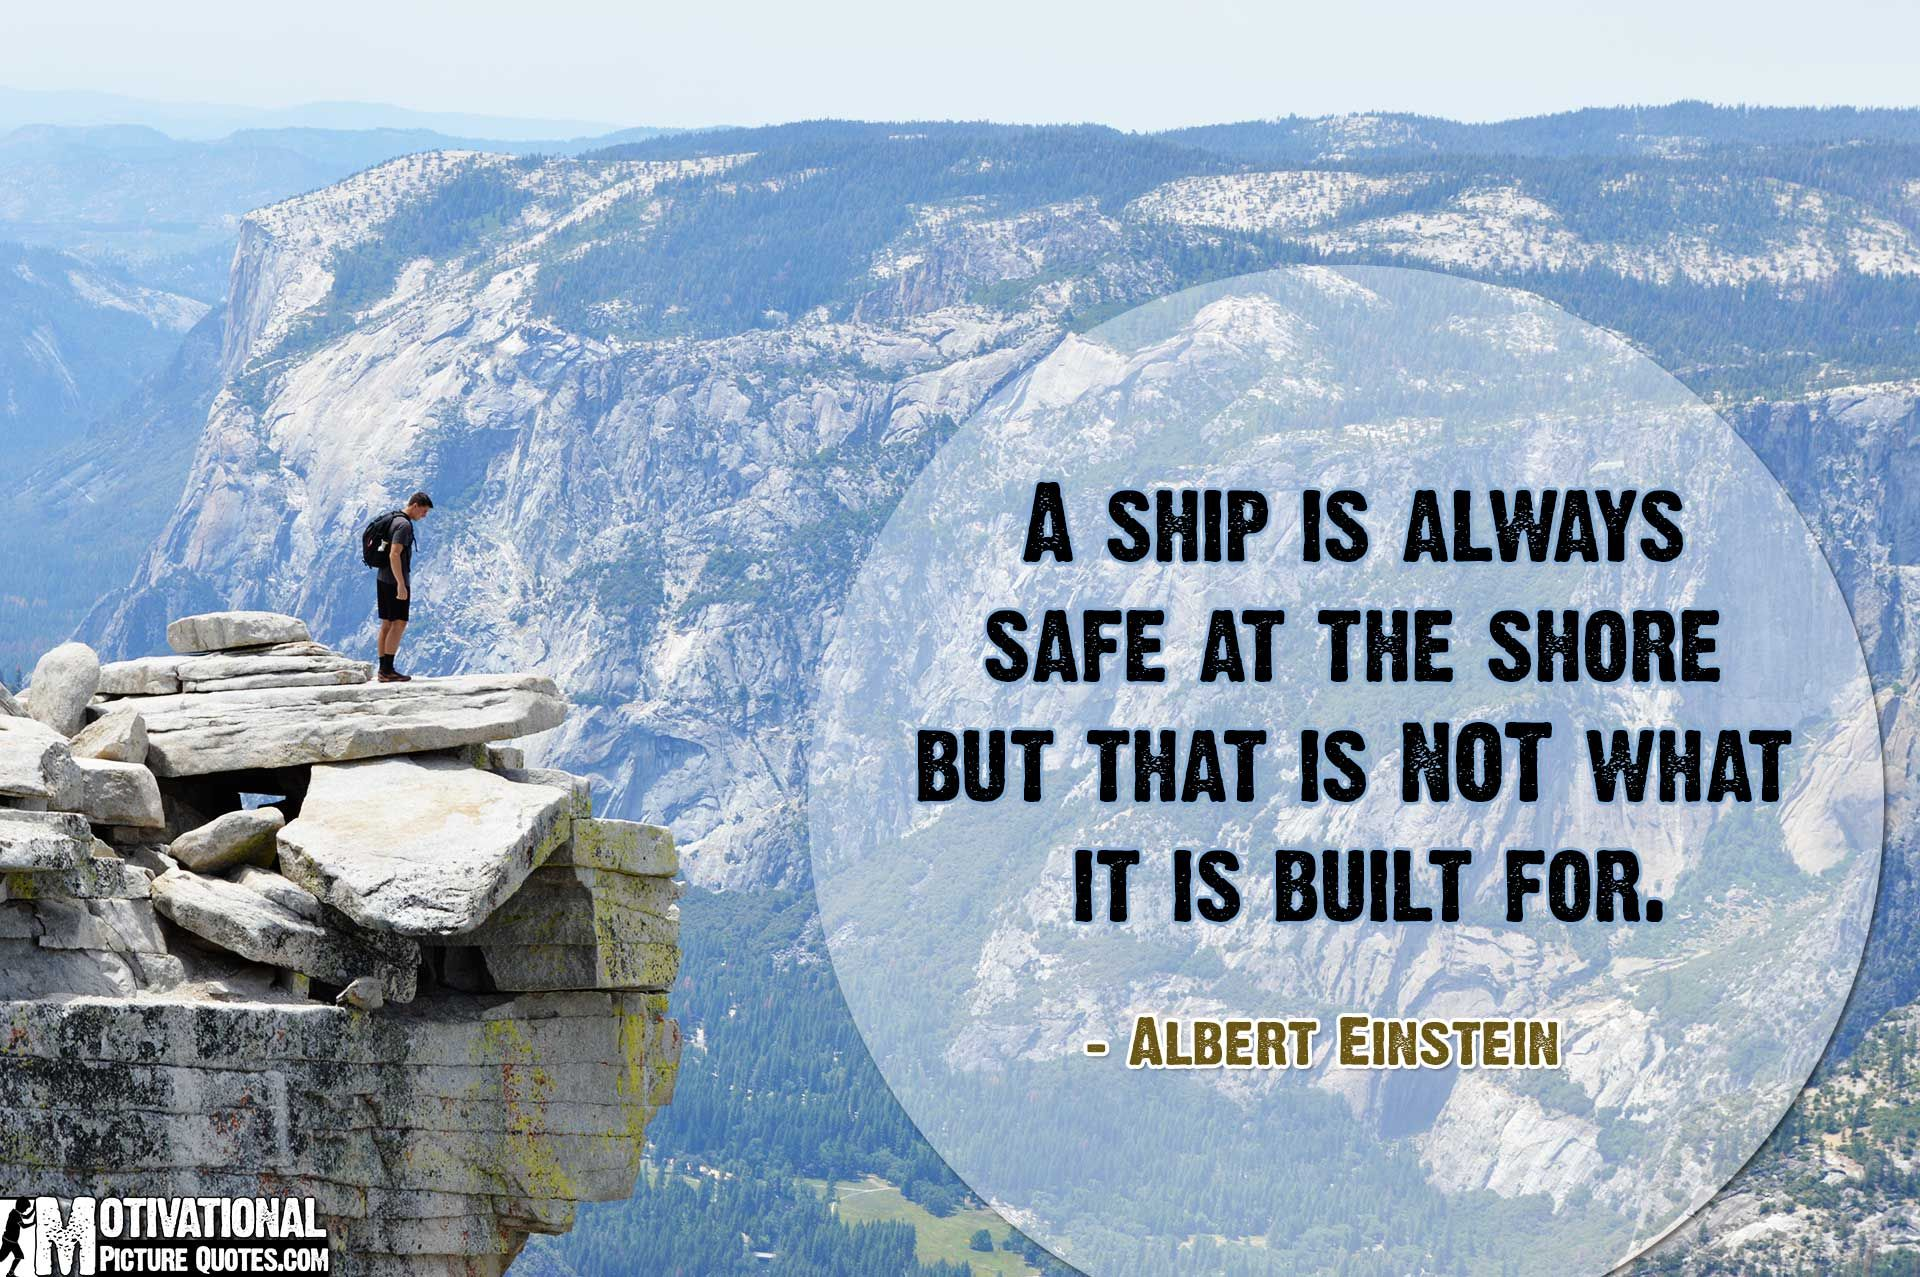 Motivational Taking Risk Quotes By Famous People To Inspire You Motivational Picture Quotes Taking Risks Quotes Risk Quotes Motivational Picture Quotes